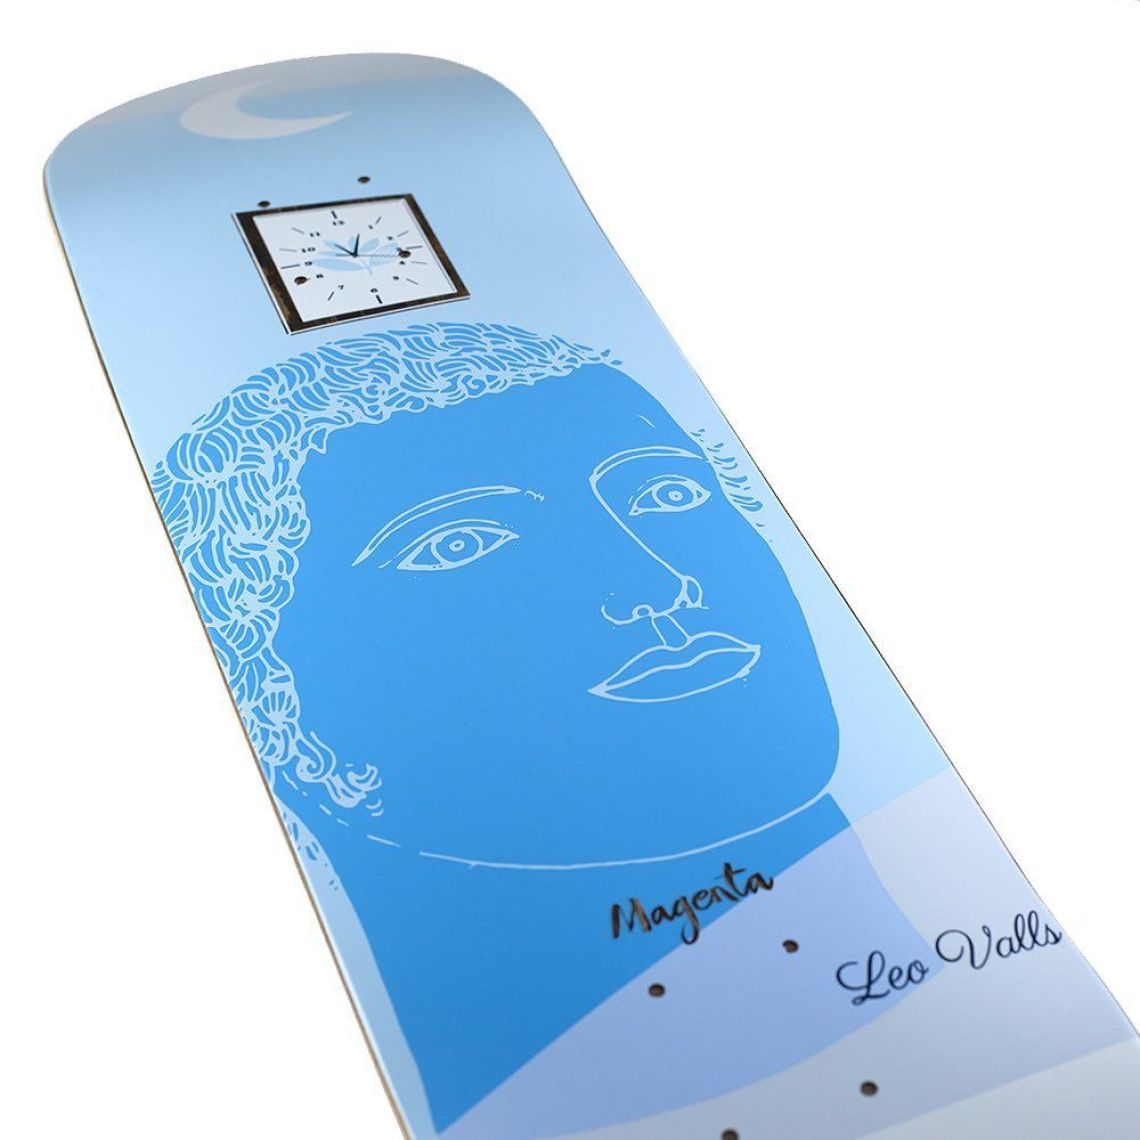 Sleep Board Series By Soy Panday For Magenta Skateboards 5